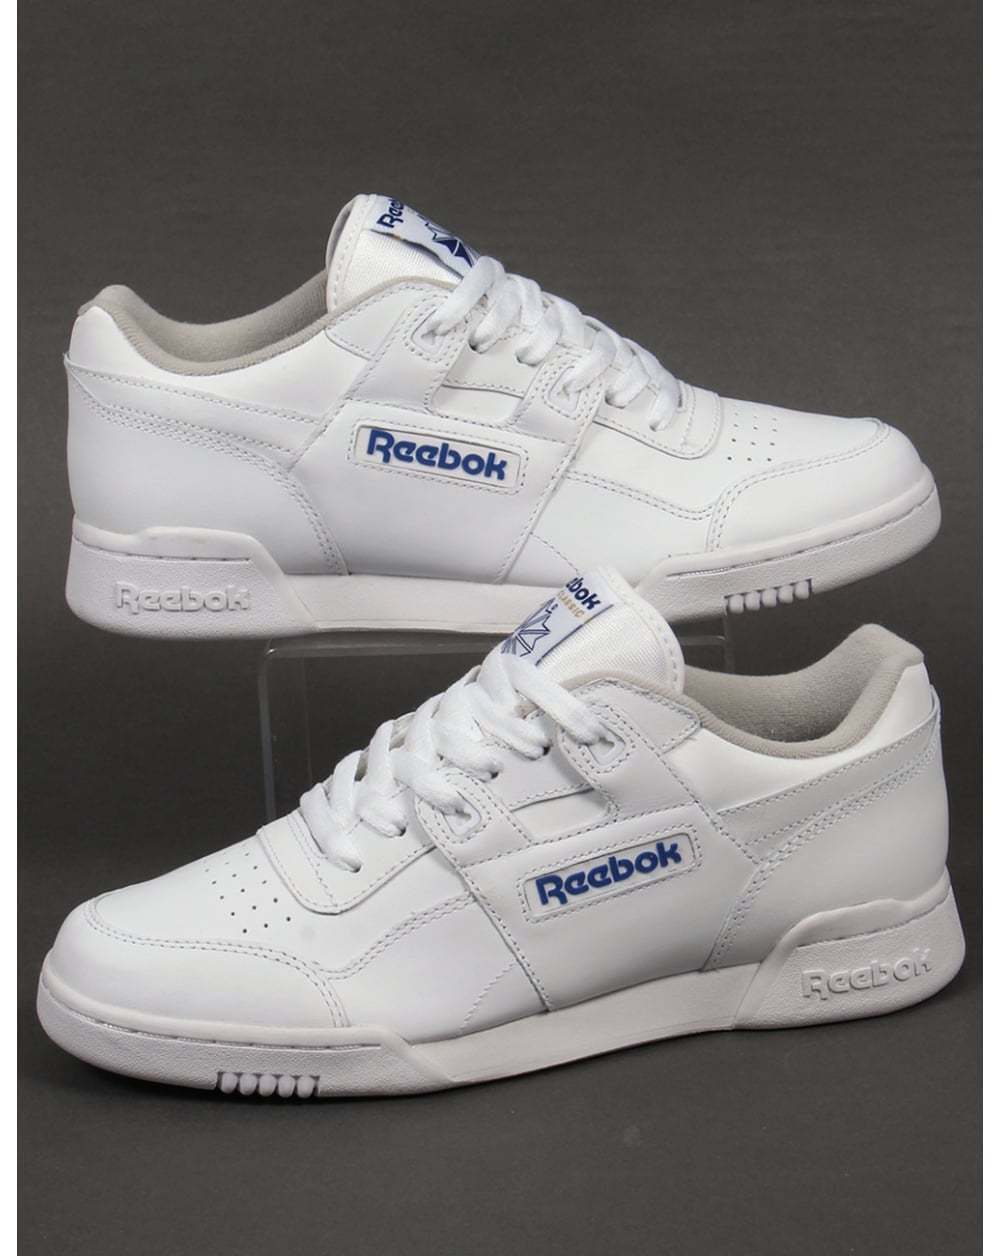 Reebok Workout Plus Trainers in Weiß - classic H Strap soft full grain leather